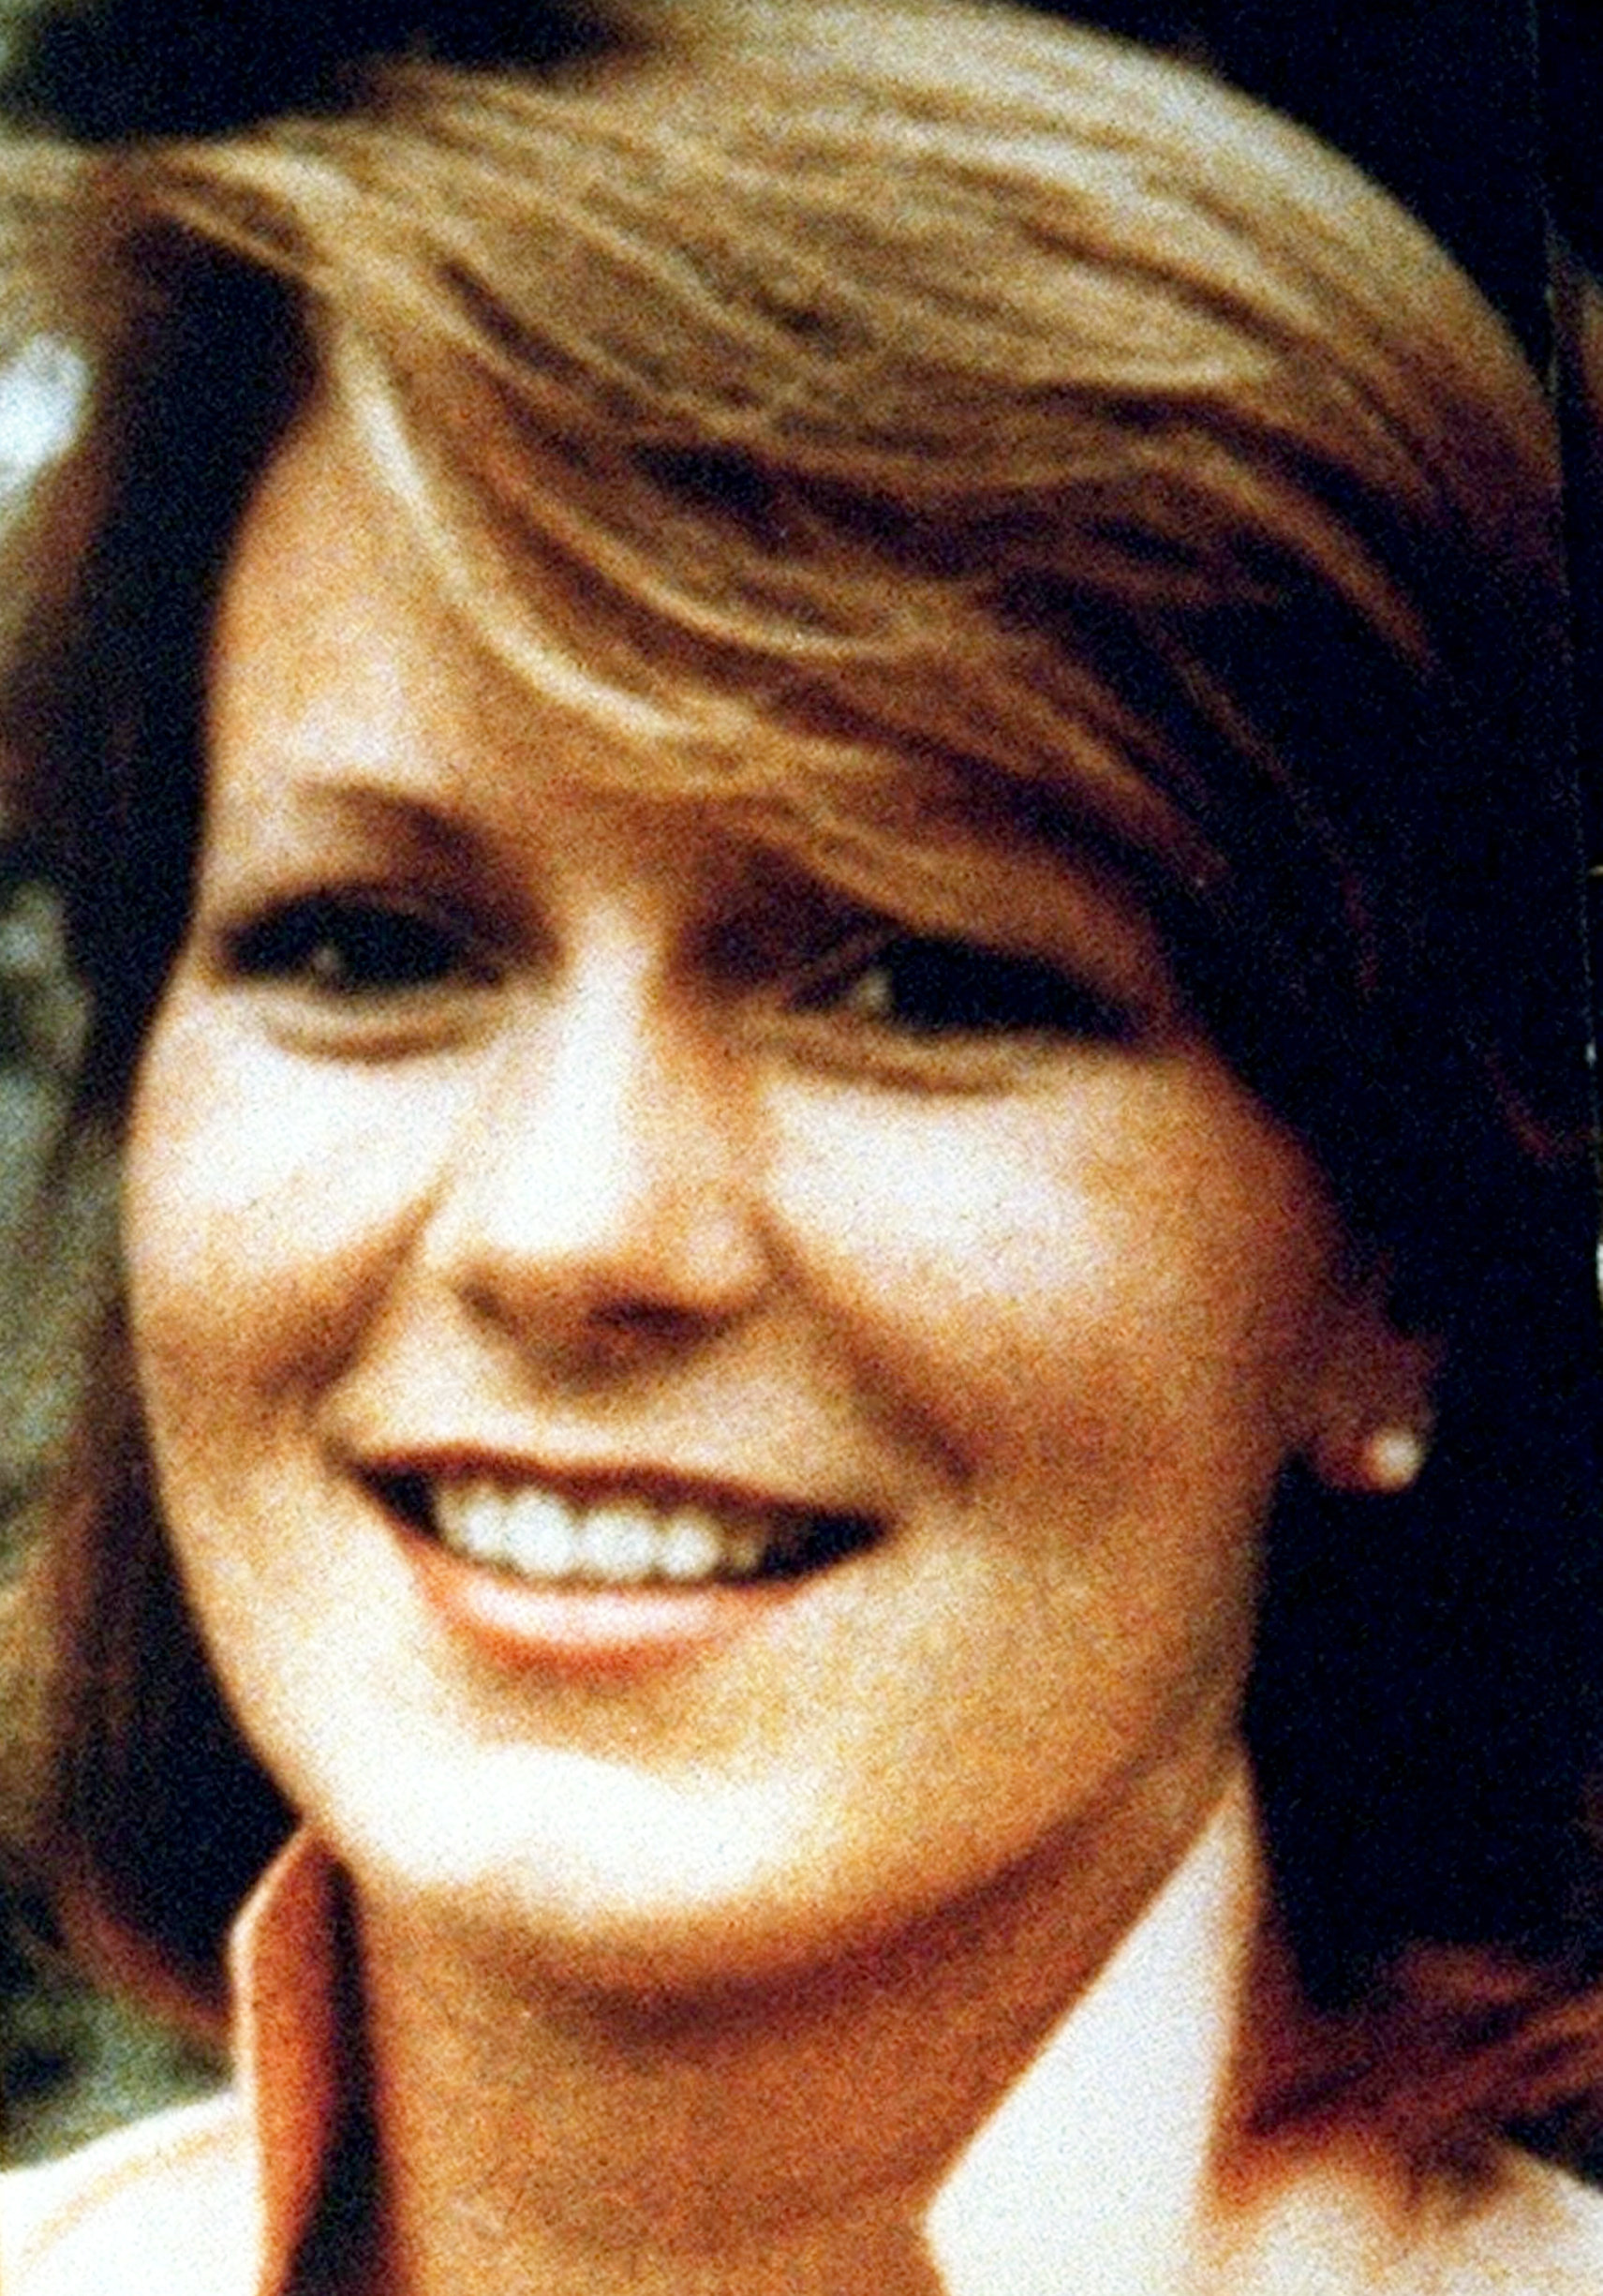 Suzy Lamplugh.  See SWNS story SWMDsuzy.  Officers were seen digging in a field just off the B4084  just outside Drakes Broughton, Worcs., in the hope of finding the remains of Suzy who went missing in 1986 aged 25.  The news comes after police dug up the garden of a Sutton Coldfield, West Mids., house previously owned by the mother of John Cannan, the prime suspect in Suzy's presumed murder, in October and November 2018.